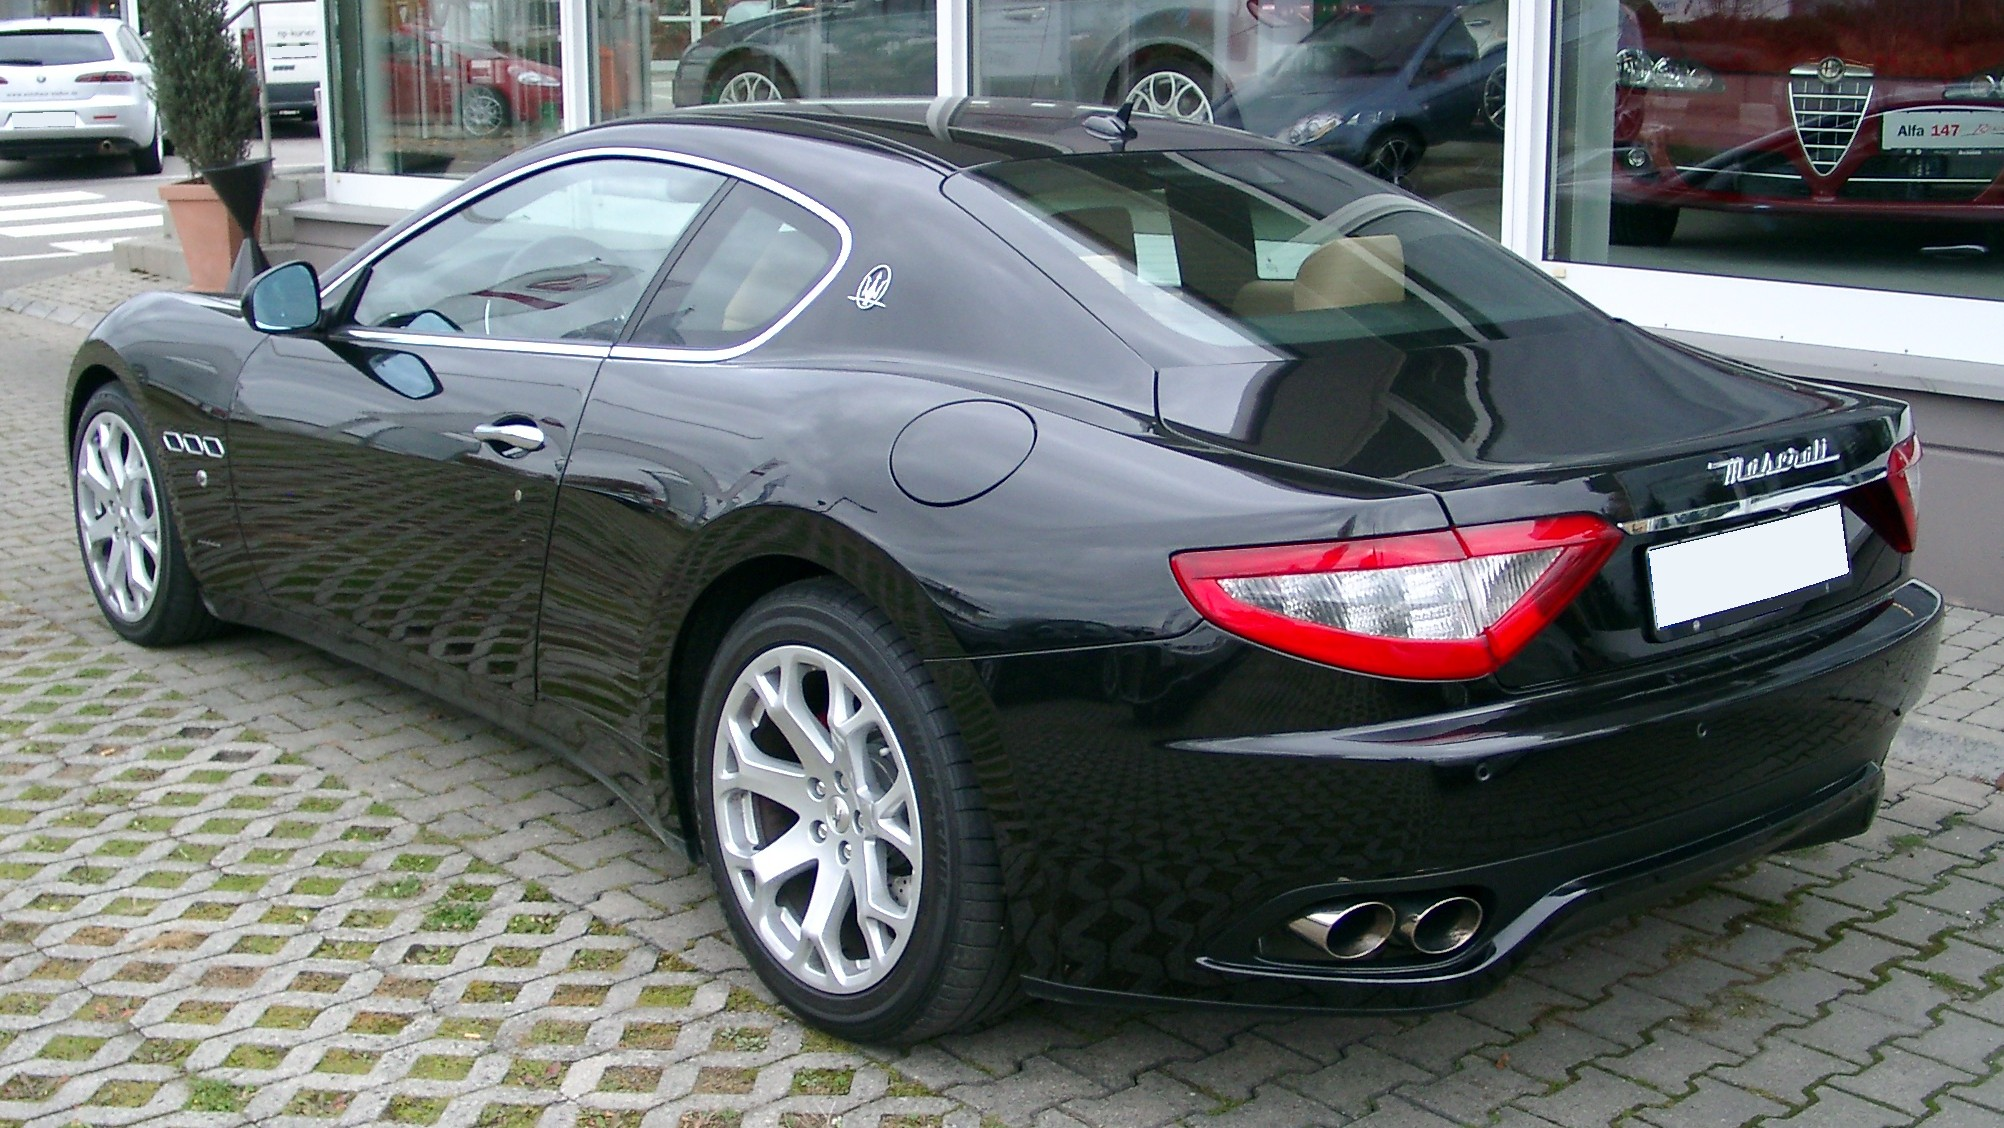 Maserati gran turismo wallpapers